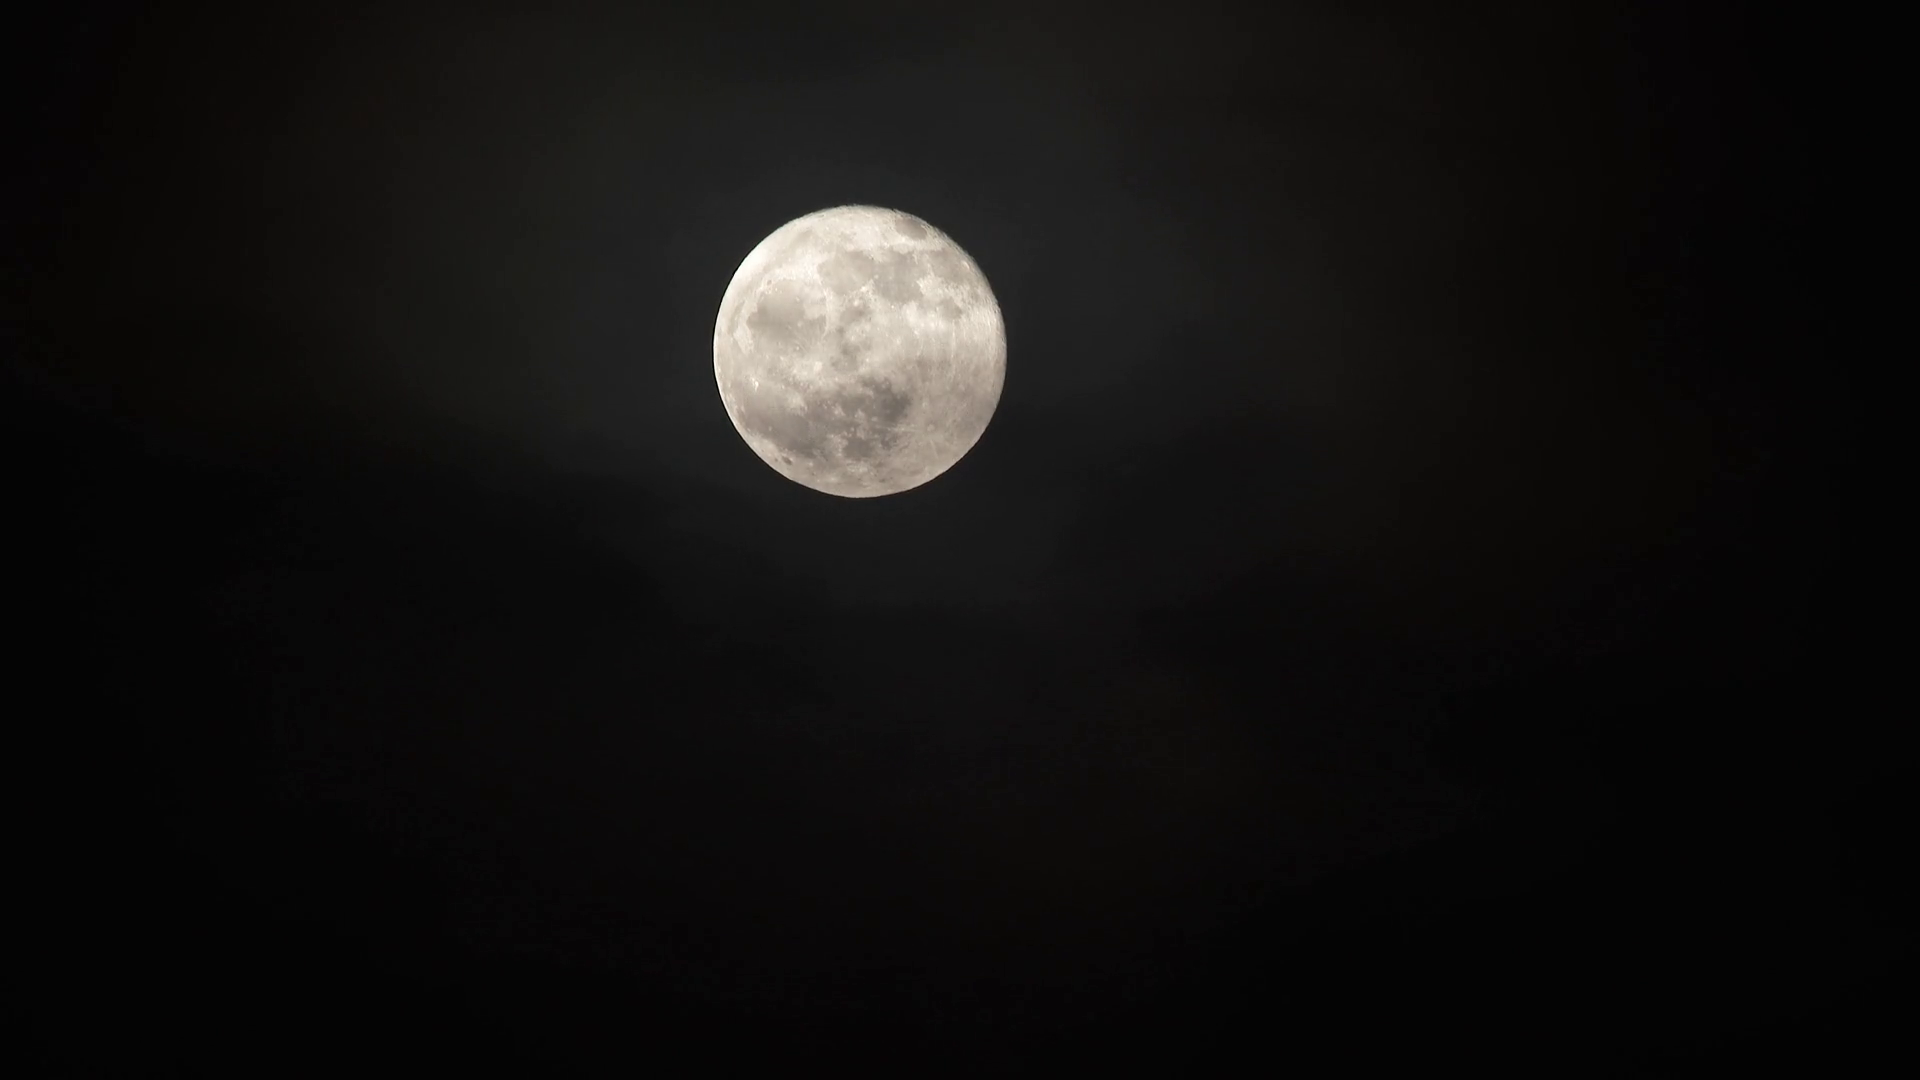 Close Up Bright Full Moon With Cloud Layer Real Time Stock Video Footage Storyblocks